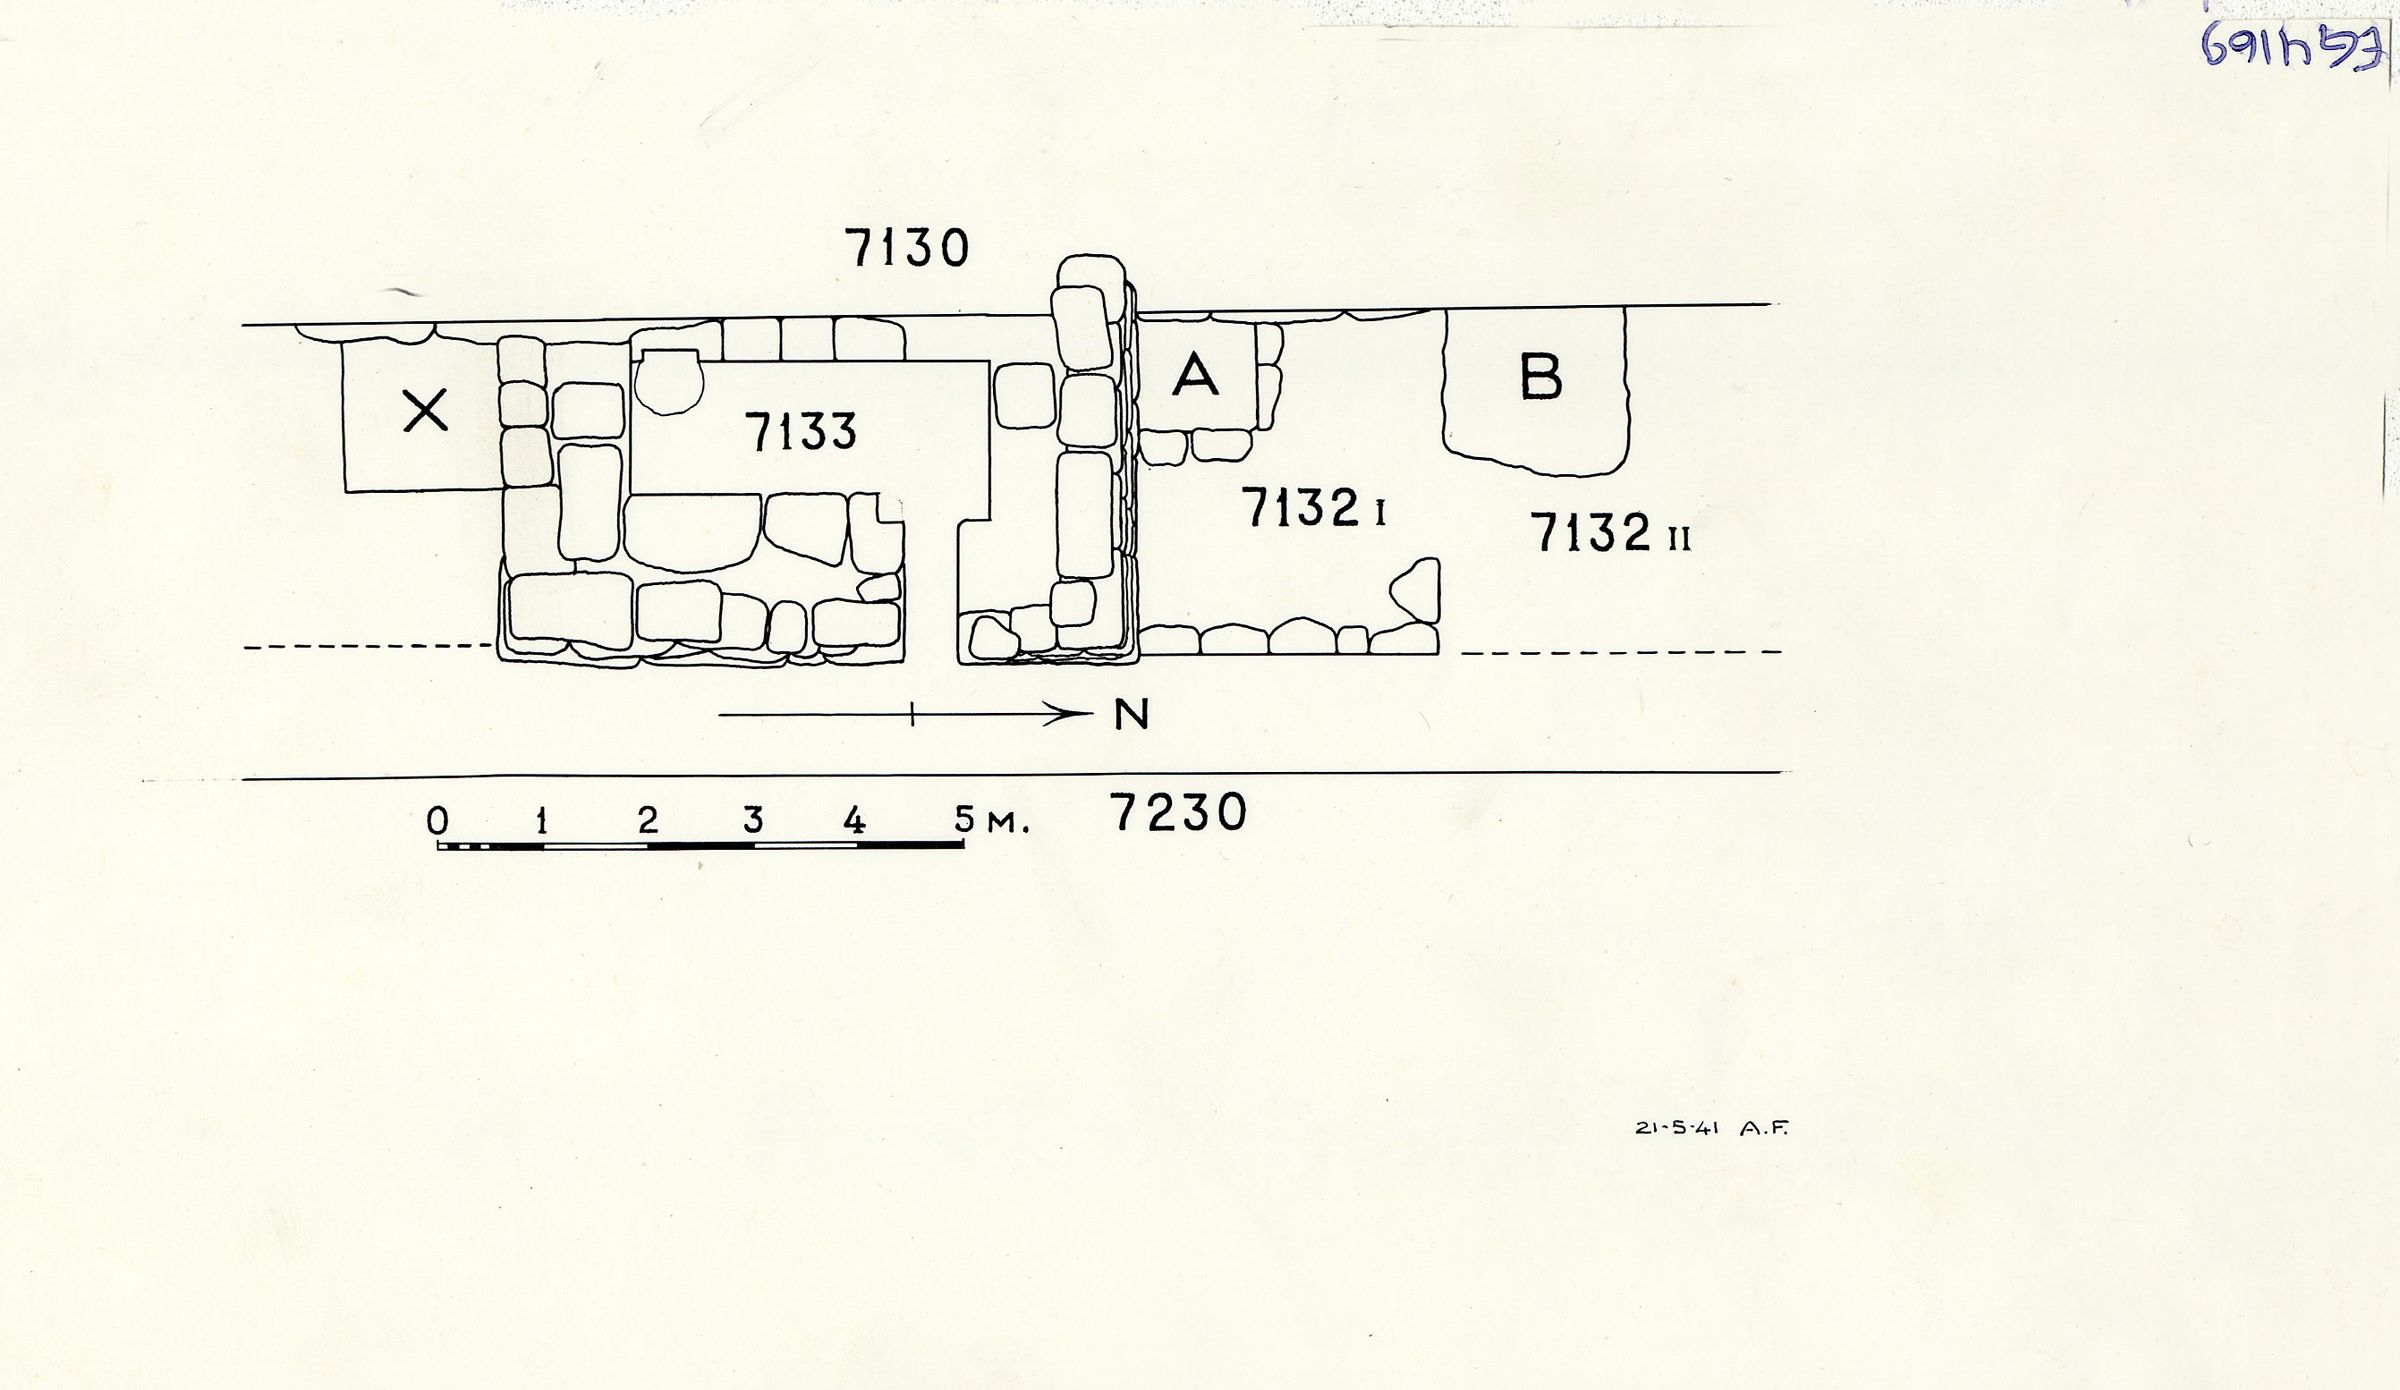 Maps and plans: Plan of G 7132 and G 7133, with position of G 7130-7140 and G 7230-7240